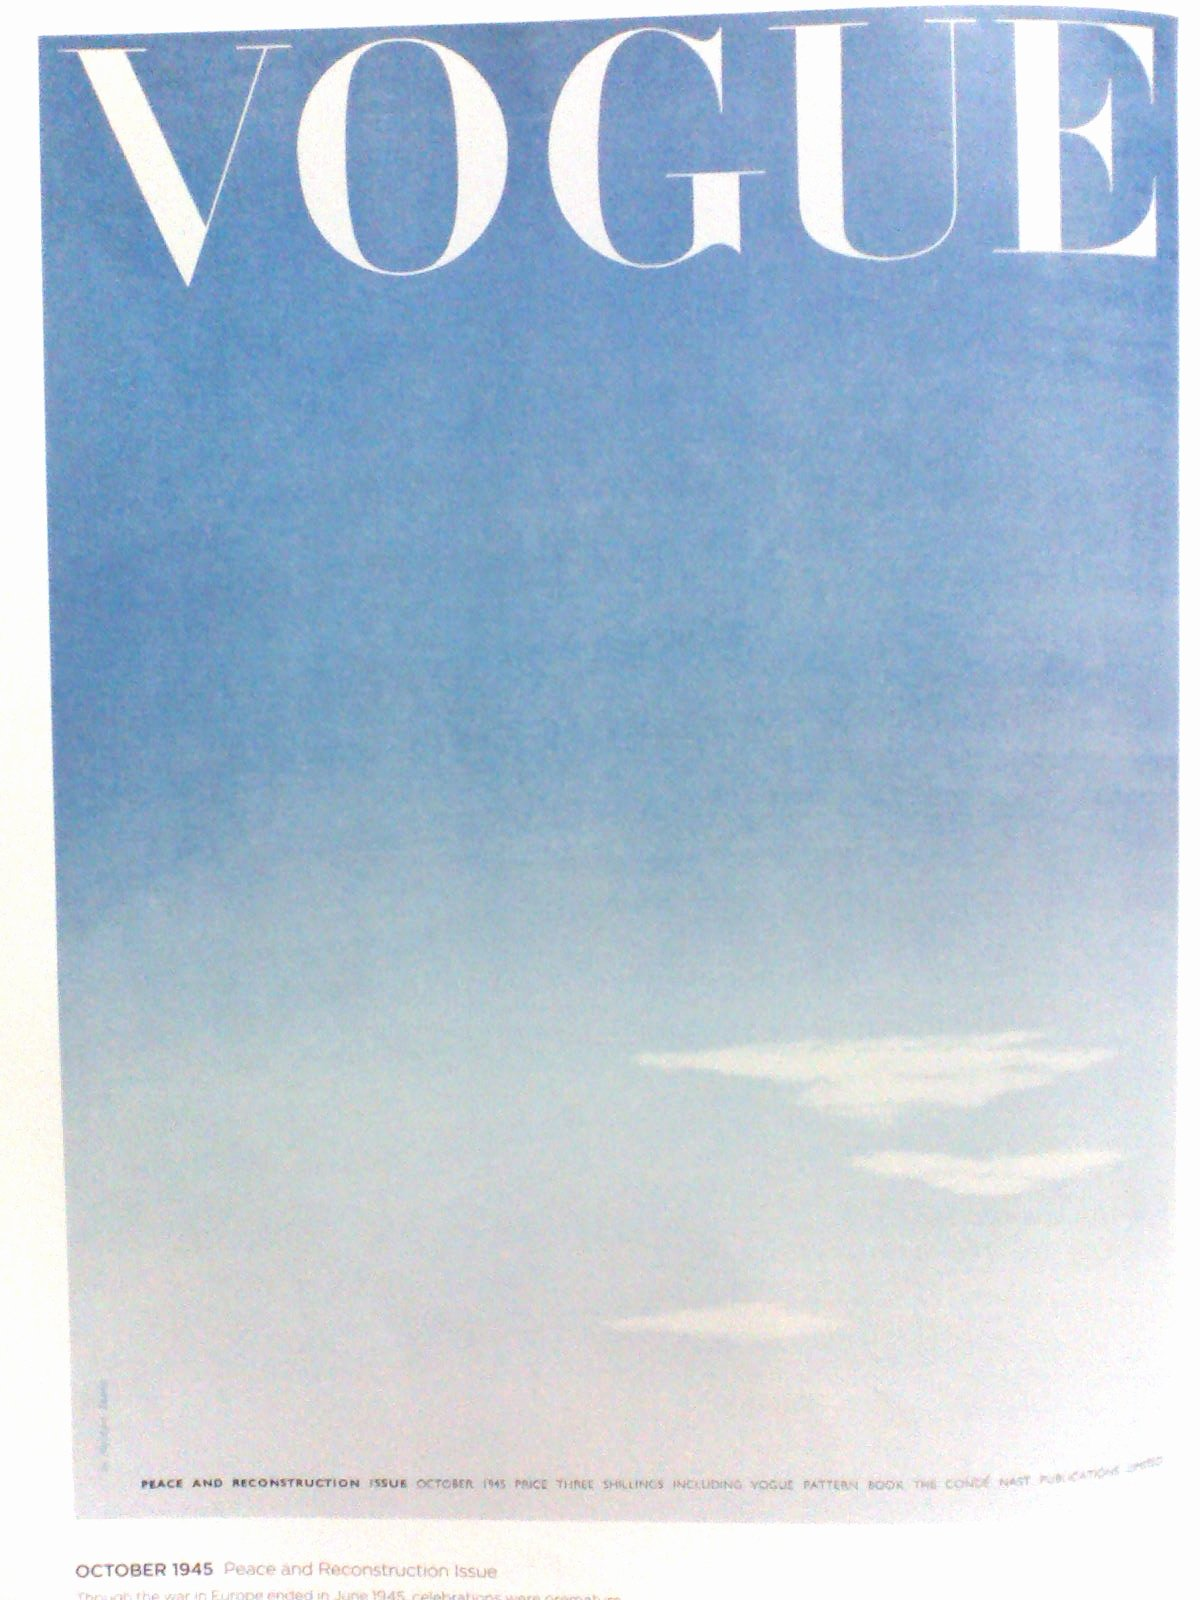 Vogue Magazine Cover Template Luxury 18 Blank Magazine Cover Design Make Your Own